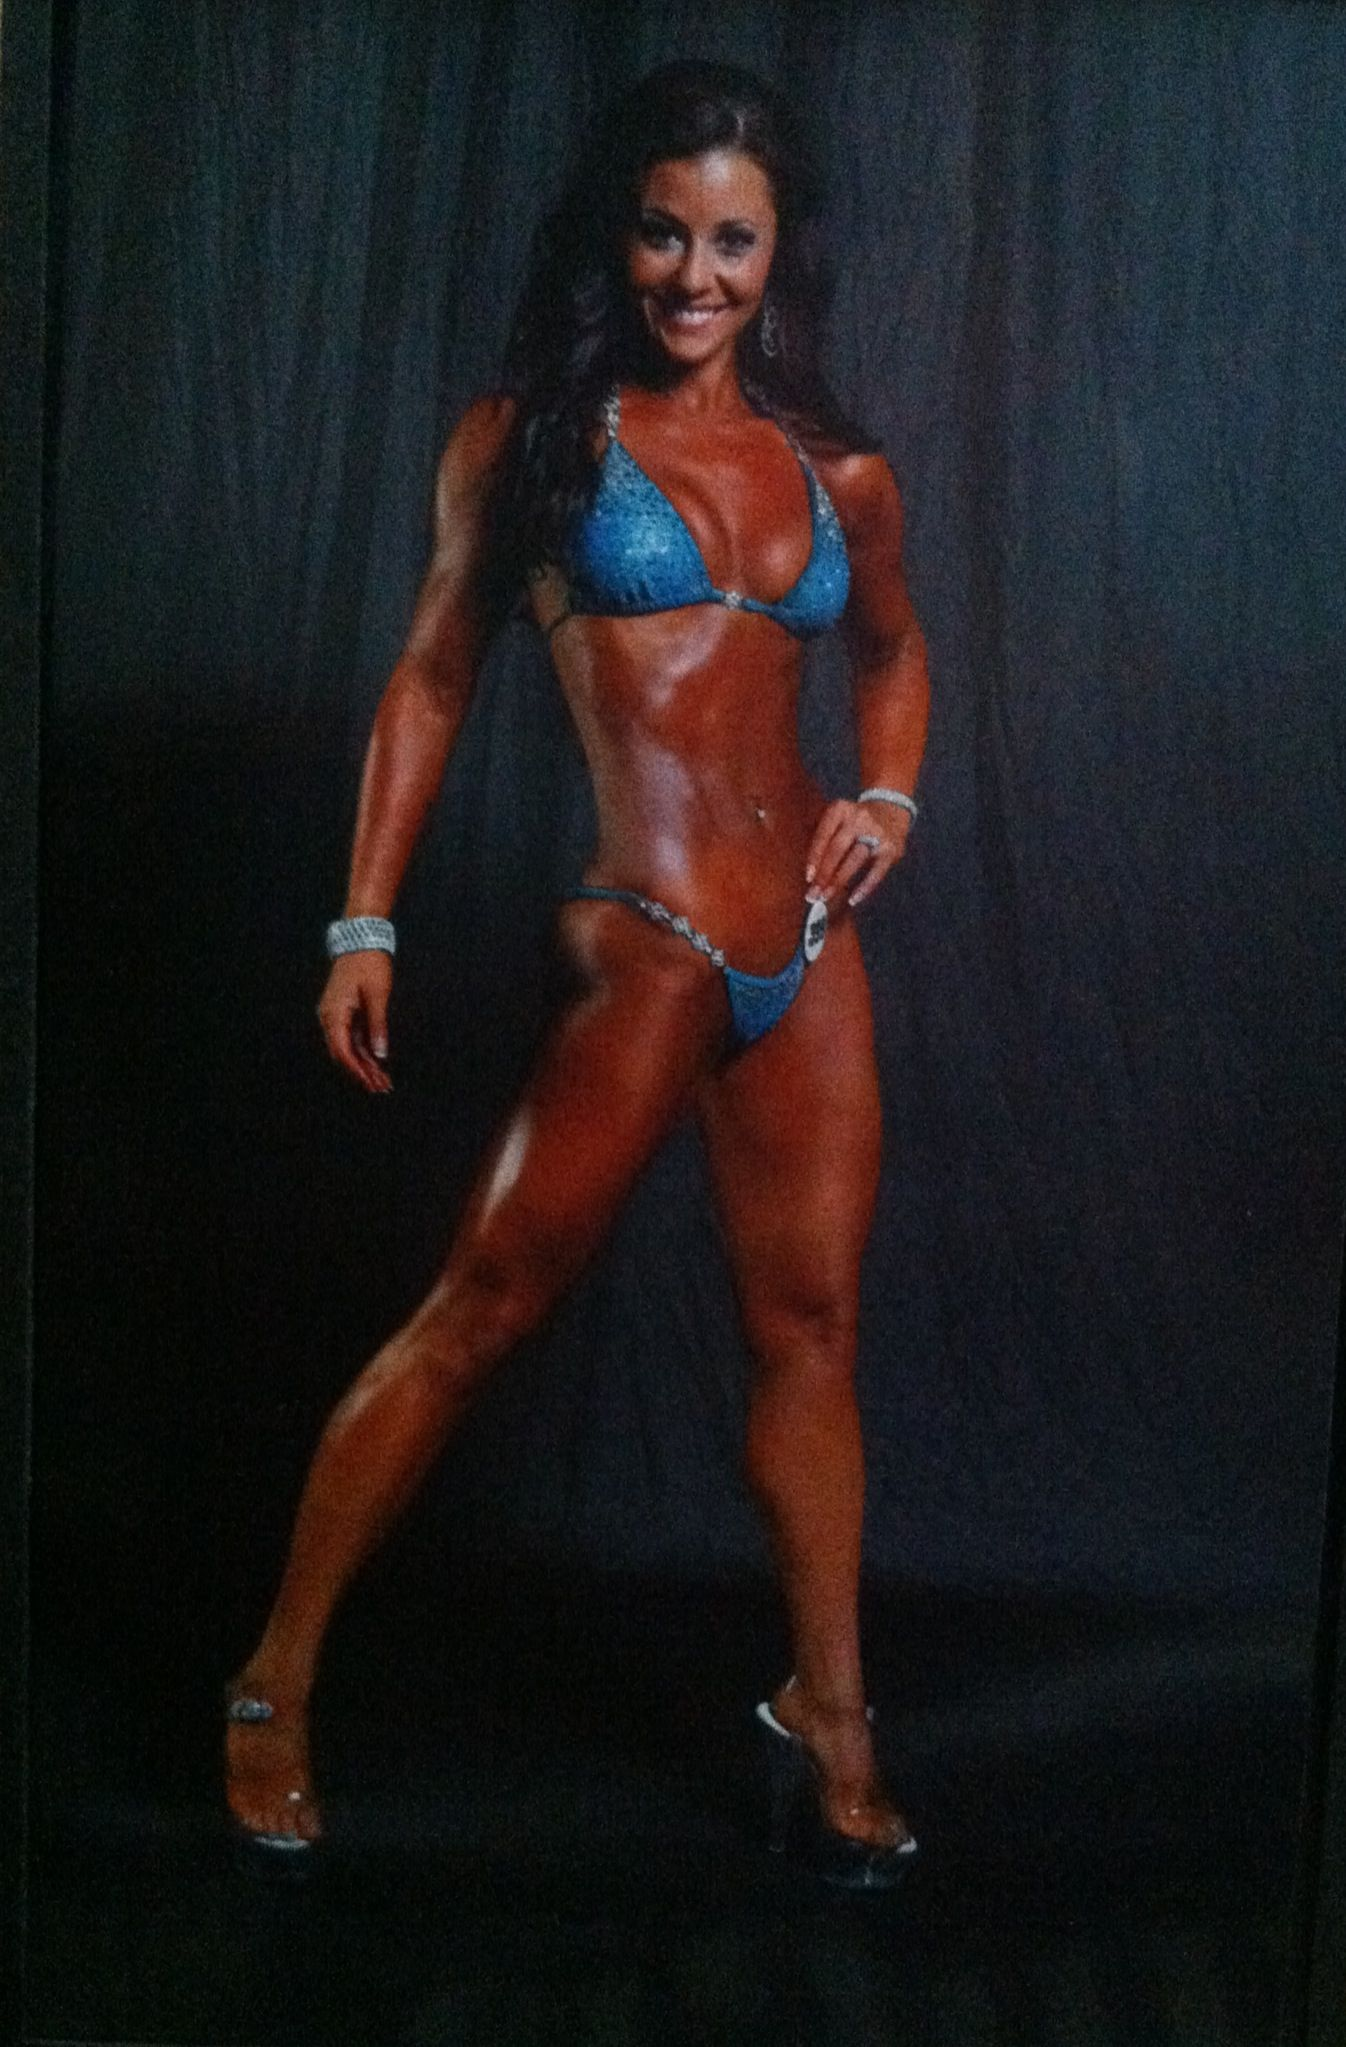 Qualifier national Npc bikini